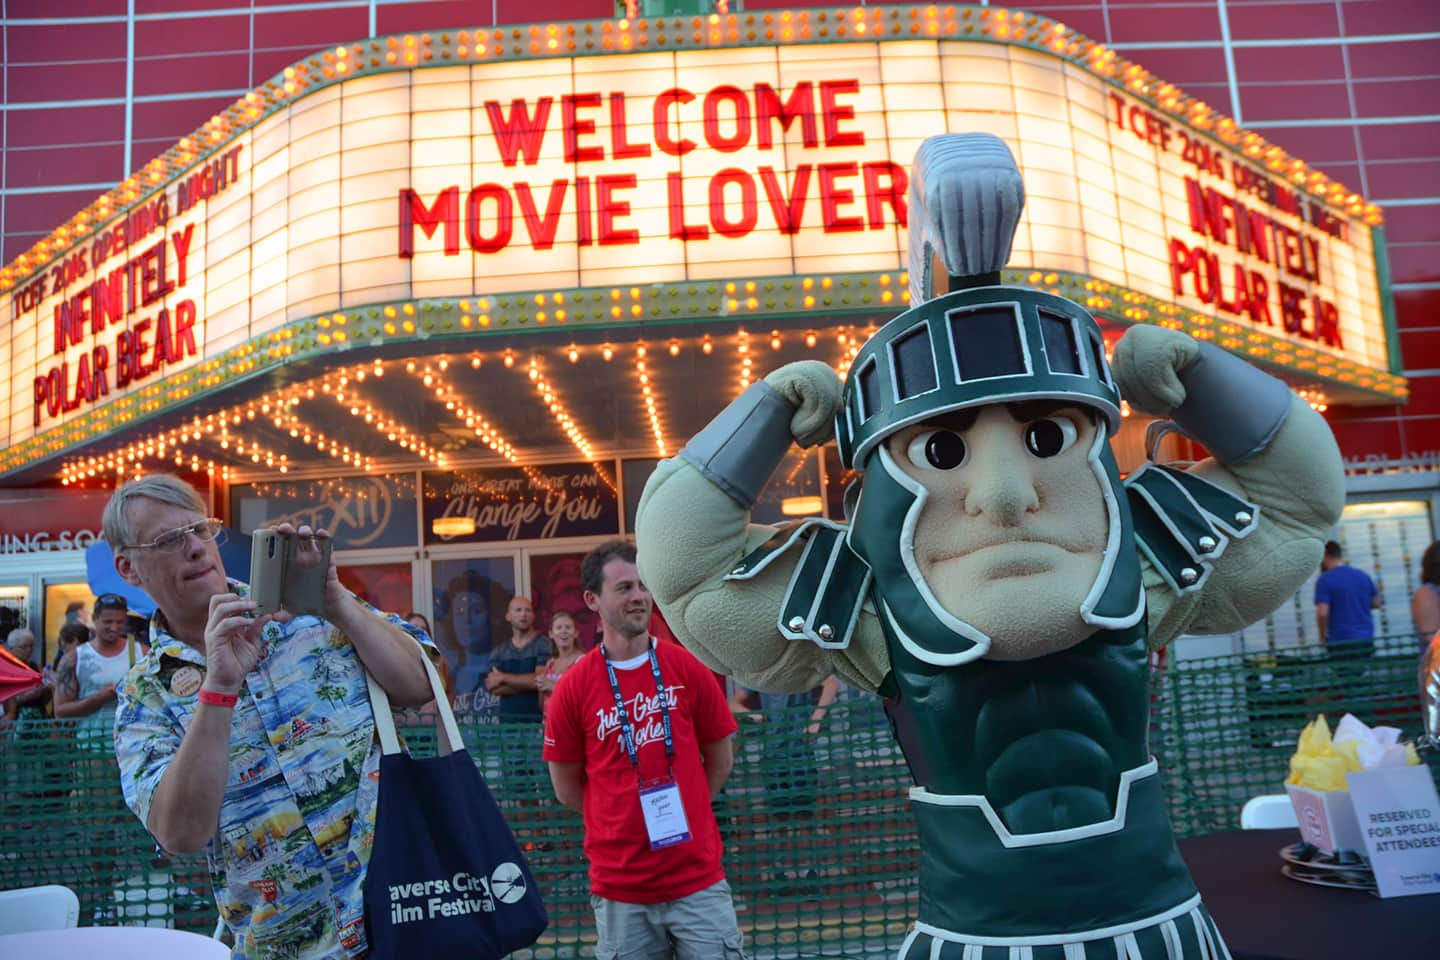 MSU Sparty standing in front of a movie theater in Traverse City for the film festival showing some muscle.